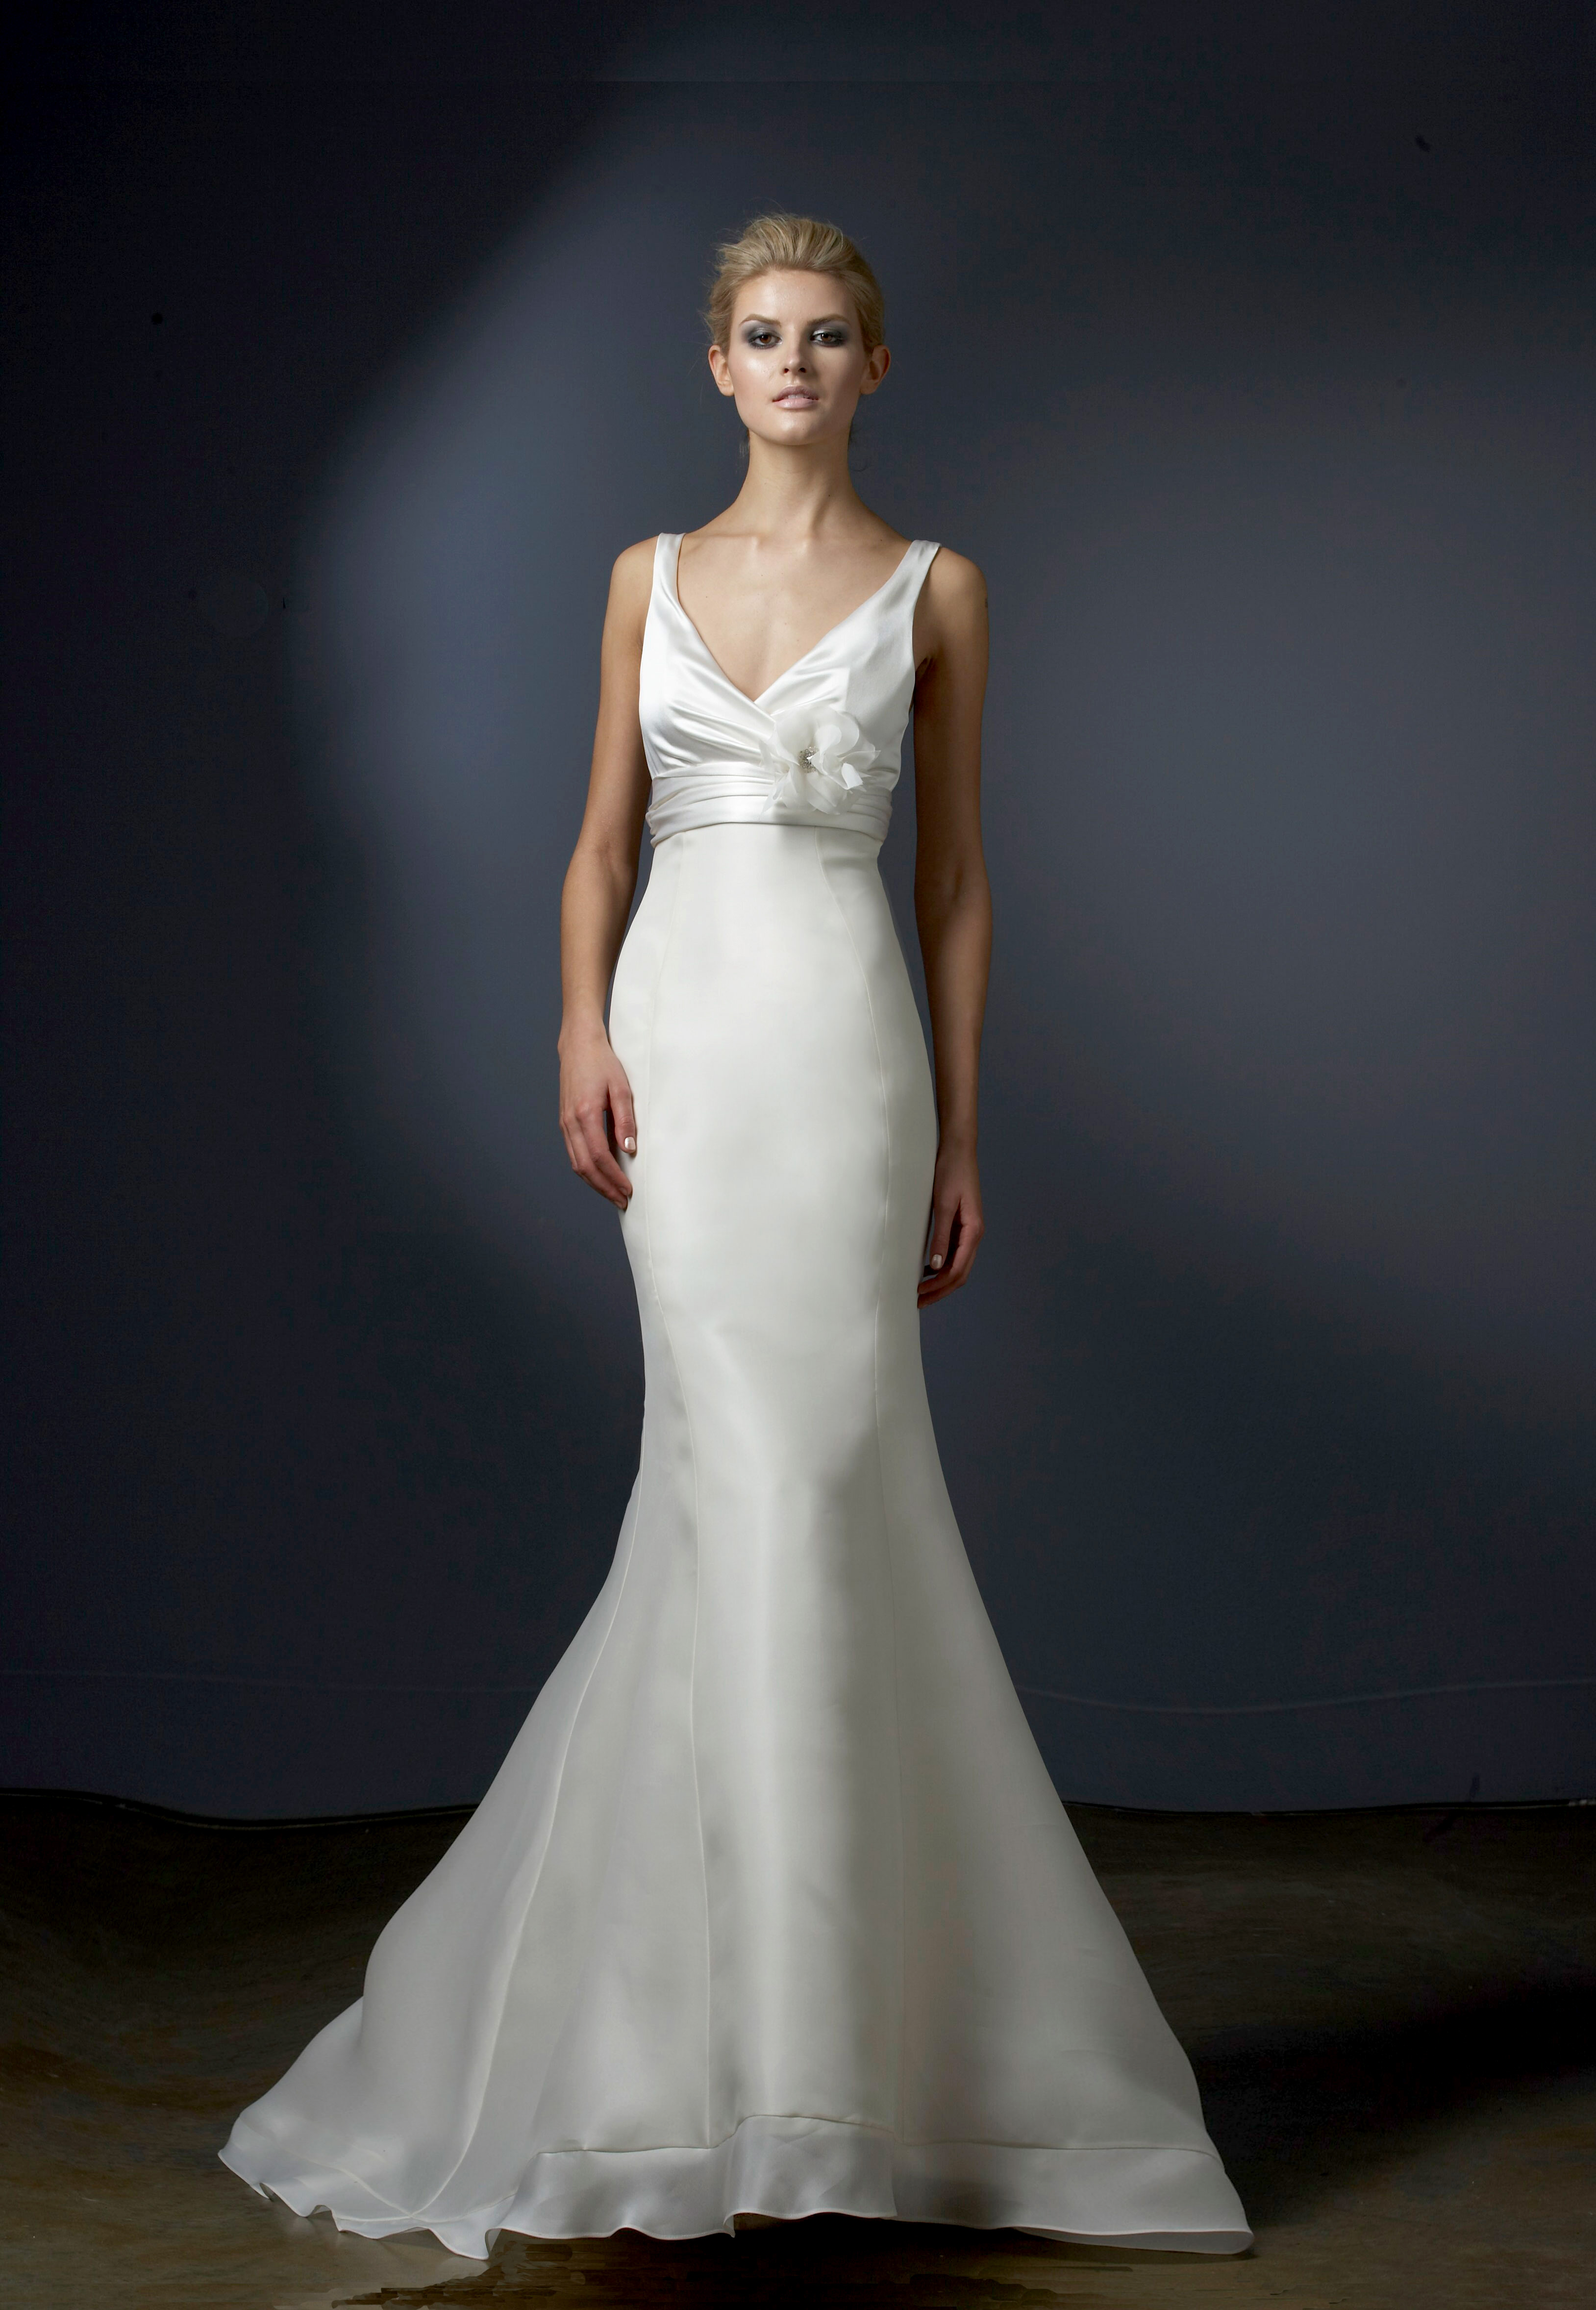 Bridal Collection 2 | Selia Yang